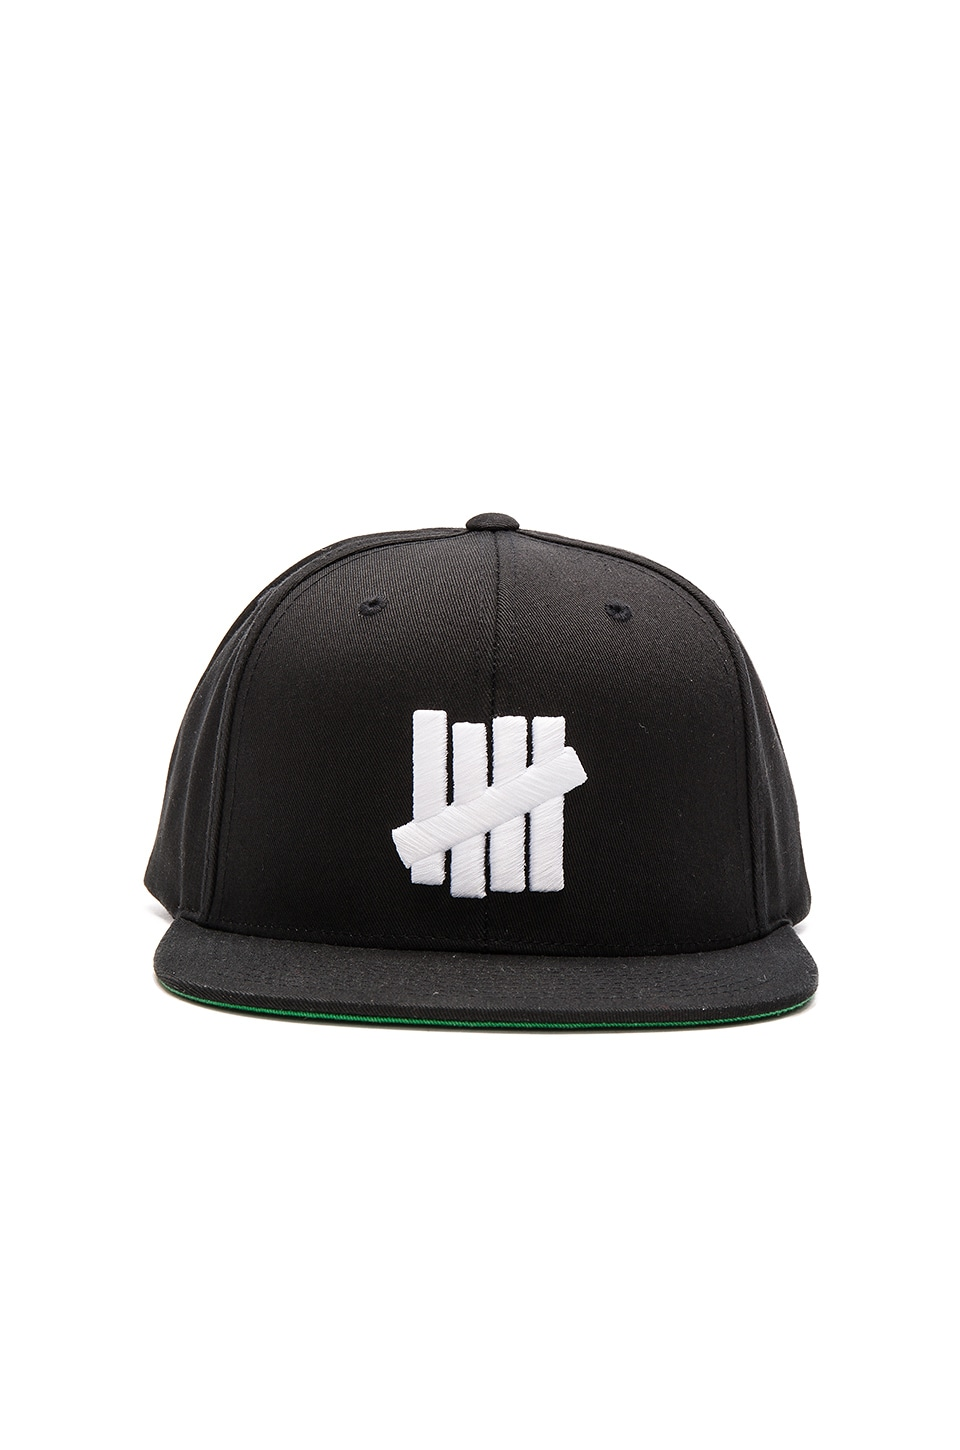 Undefeated 5 Strike SP15 Snapback in Black